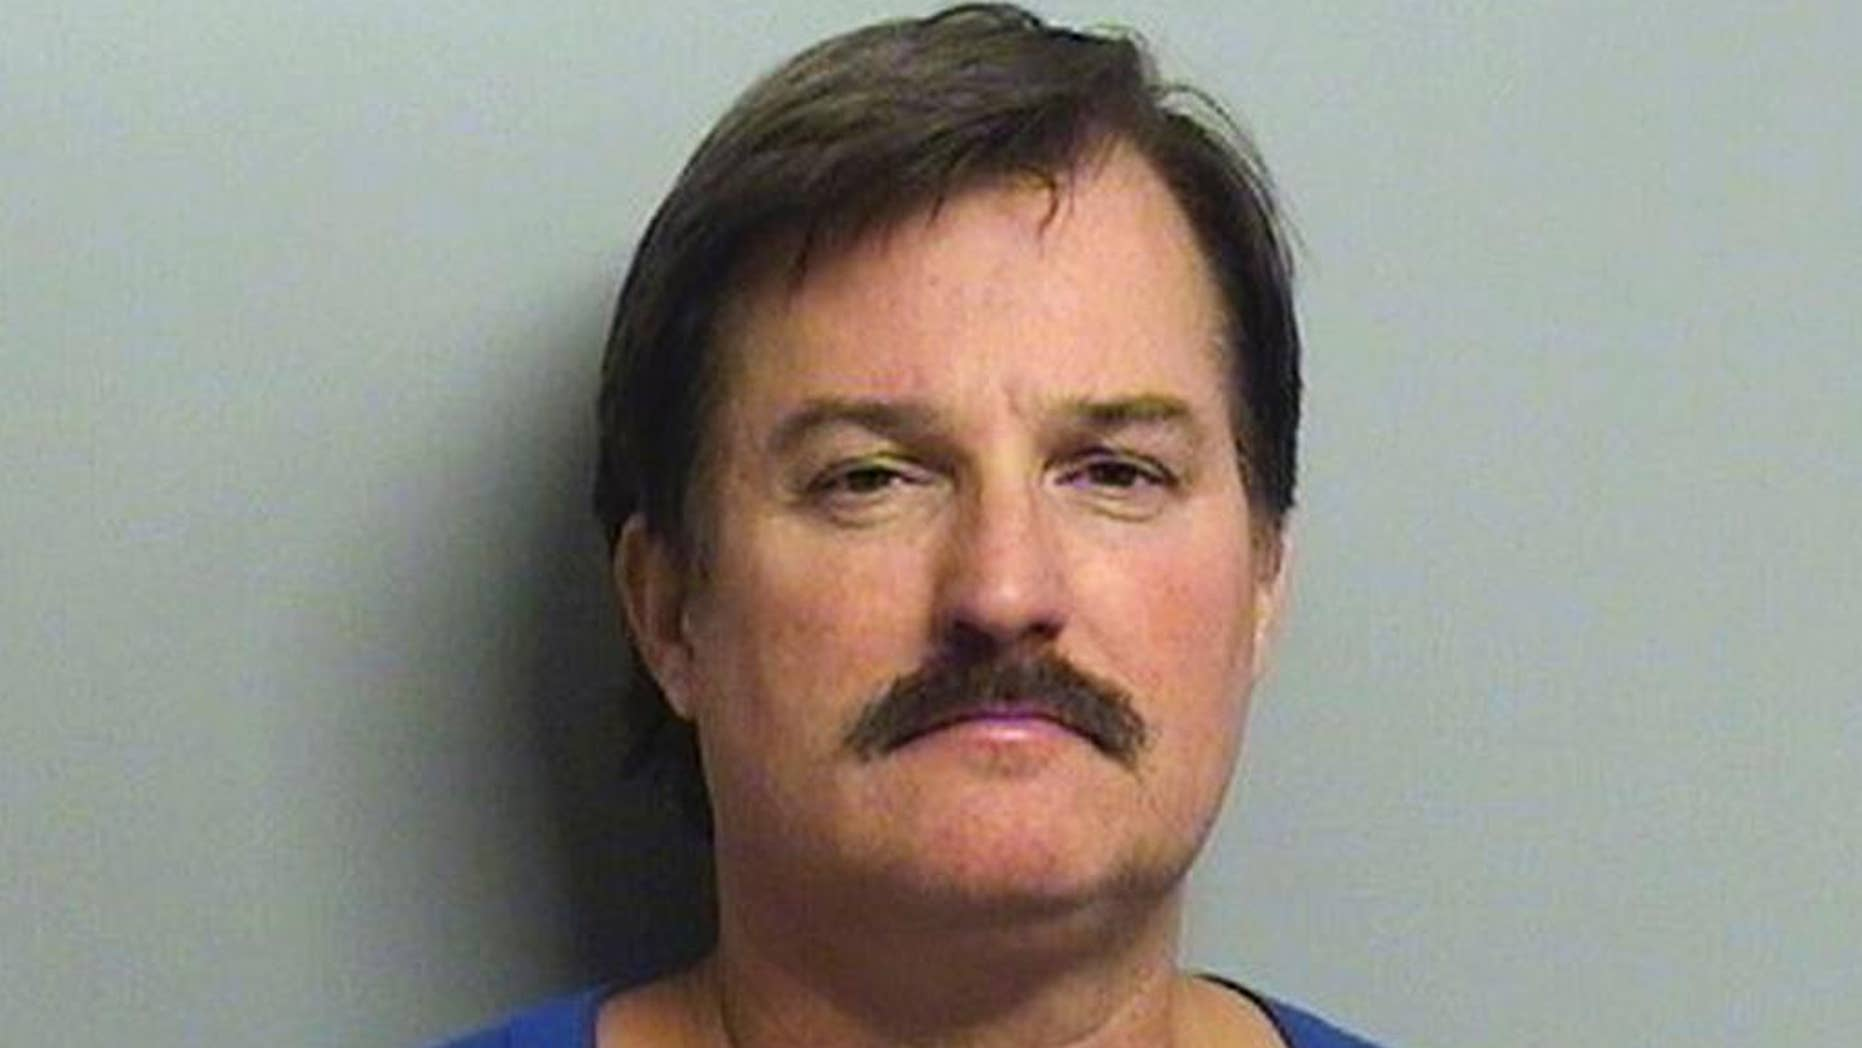 FILE - This undated file booking photo provided by the Tulsa County Sheriff's Office shows Shannon Kepler. On Friday, Nov. 11, 2016, a judge declared a mistrial after jurors couldn't agree whether to convict Kepler, a former Tulsa police officer, of first-degree murder in the 2014 fatal shooting of his daughter's boyfriend. (Tulsa County Sheriff's Office via AP, File)